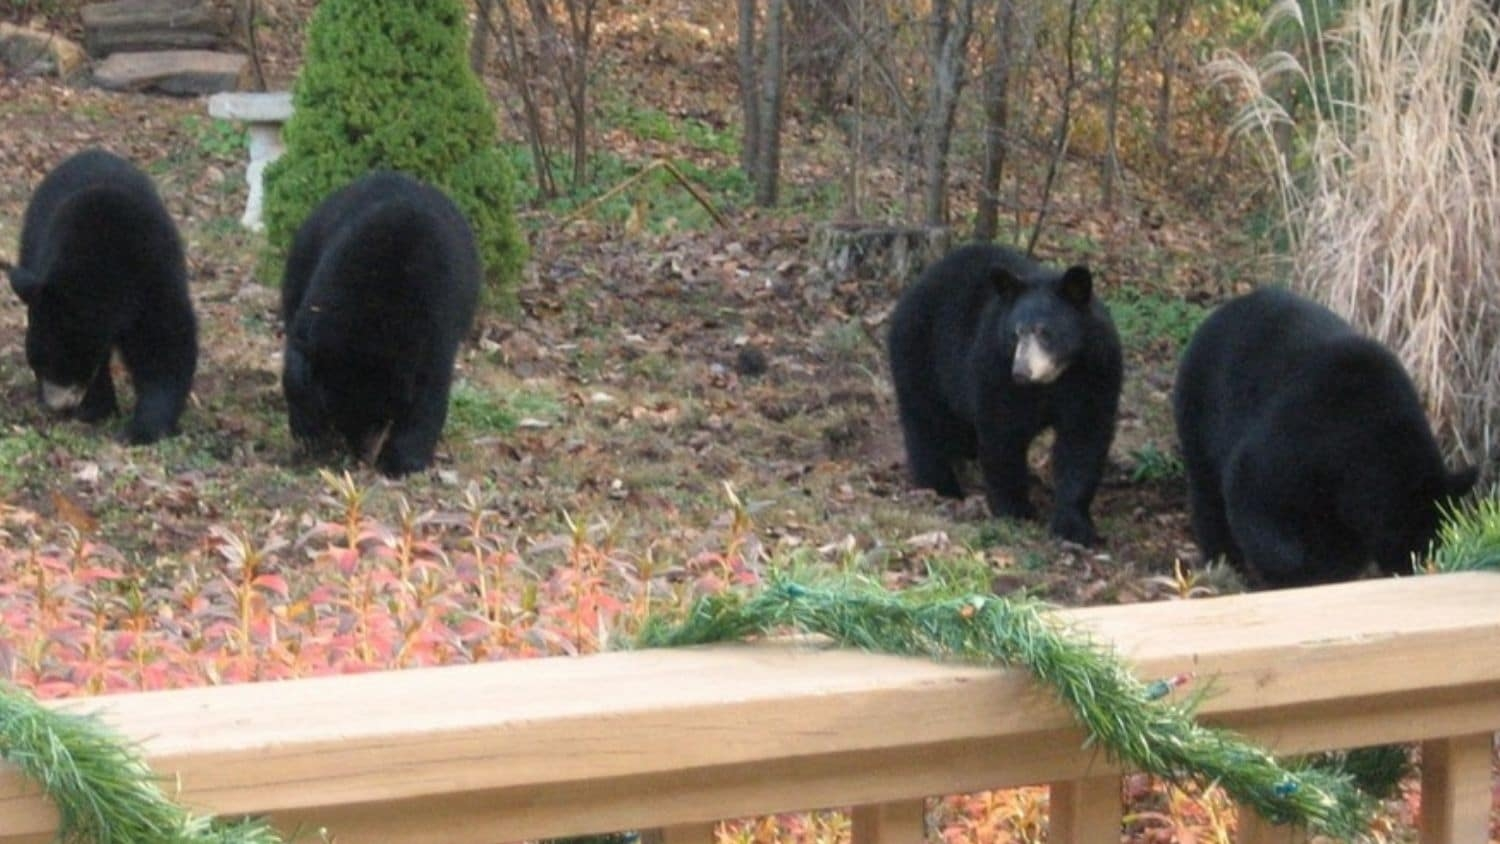 Black bears in Asheville - Young Female Black Bears in Asheville, North Carolina, Are Big, Have Cubs Early - College of Natural Resources News NC State University